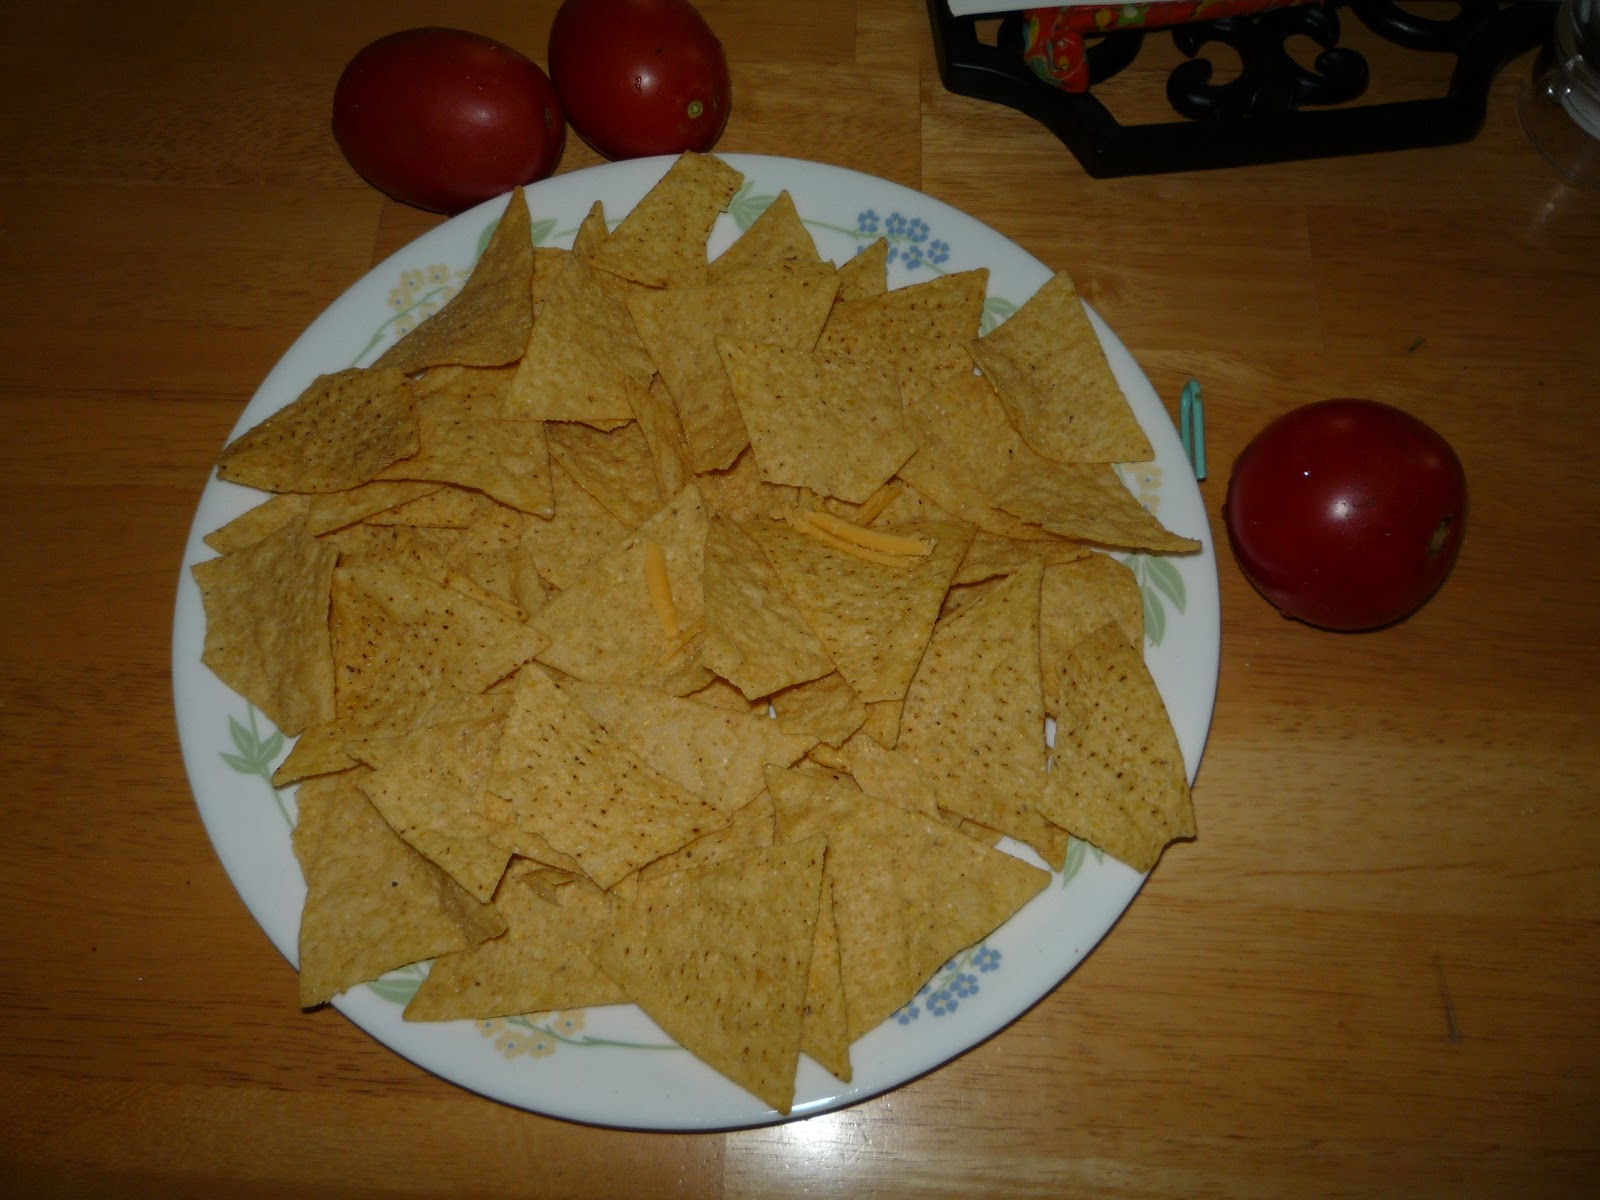 Jan 18, · Nacho Cheese is easy to make yourself from scratch, and is the perfect melty sauce to pour over tortilla chips. This Nacho Cheese Sauce is made with only five all-natural ingredients, and takes 10 minutes to make/5(65).